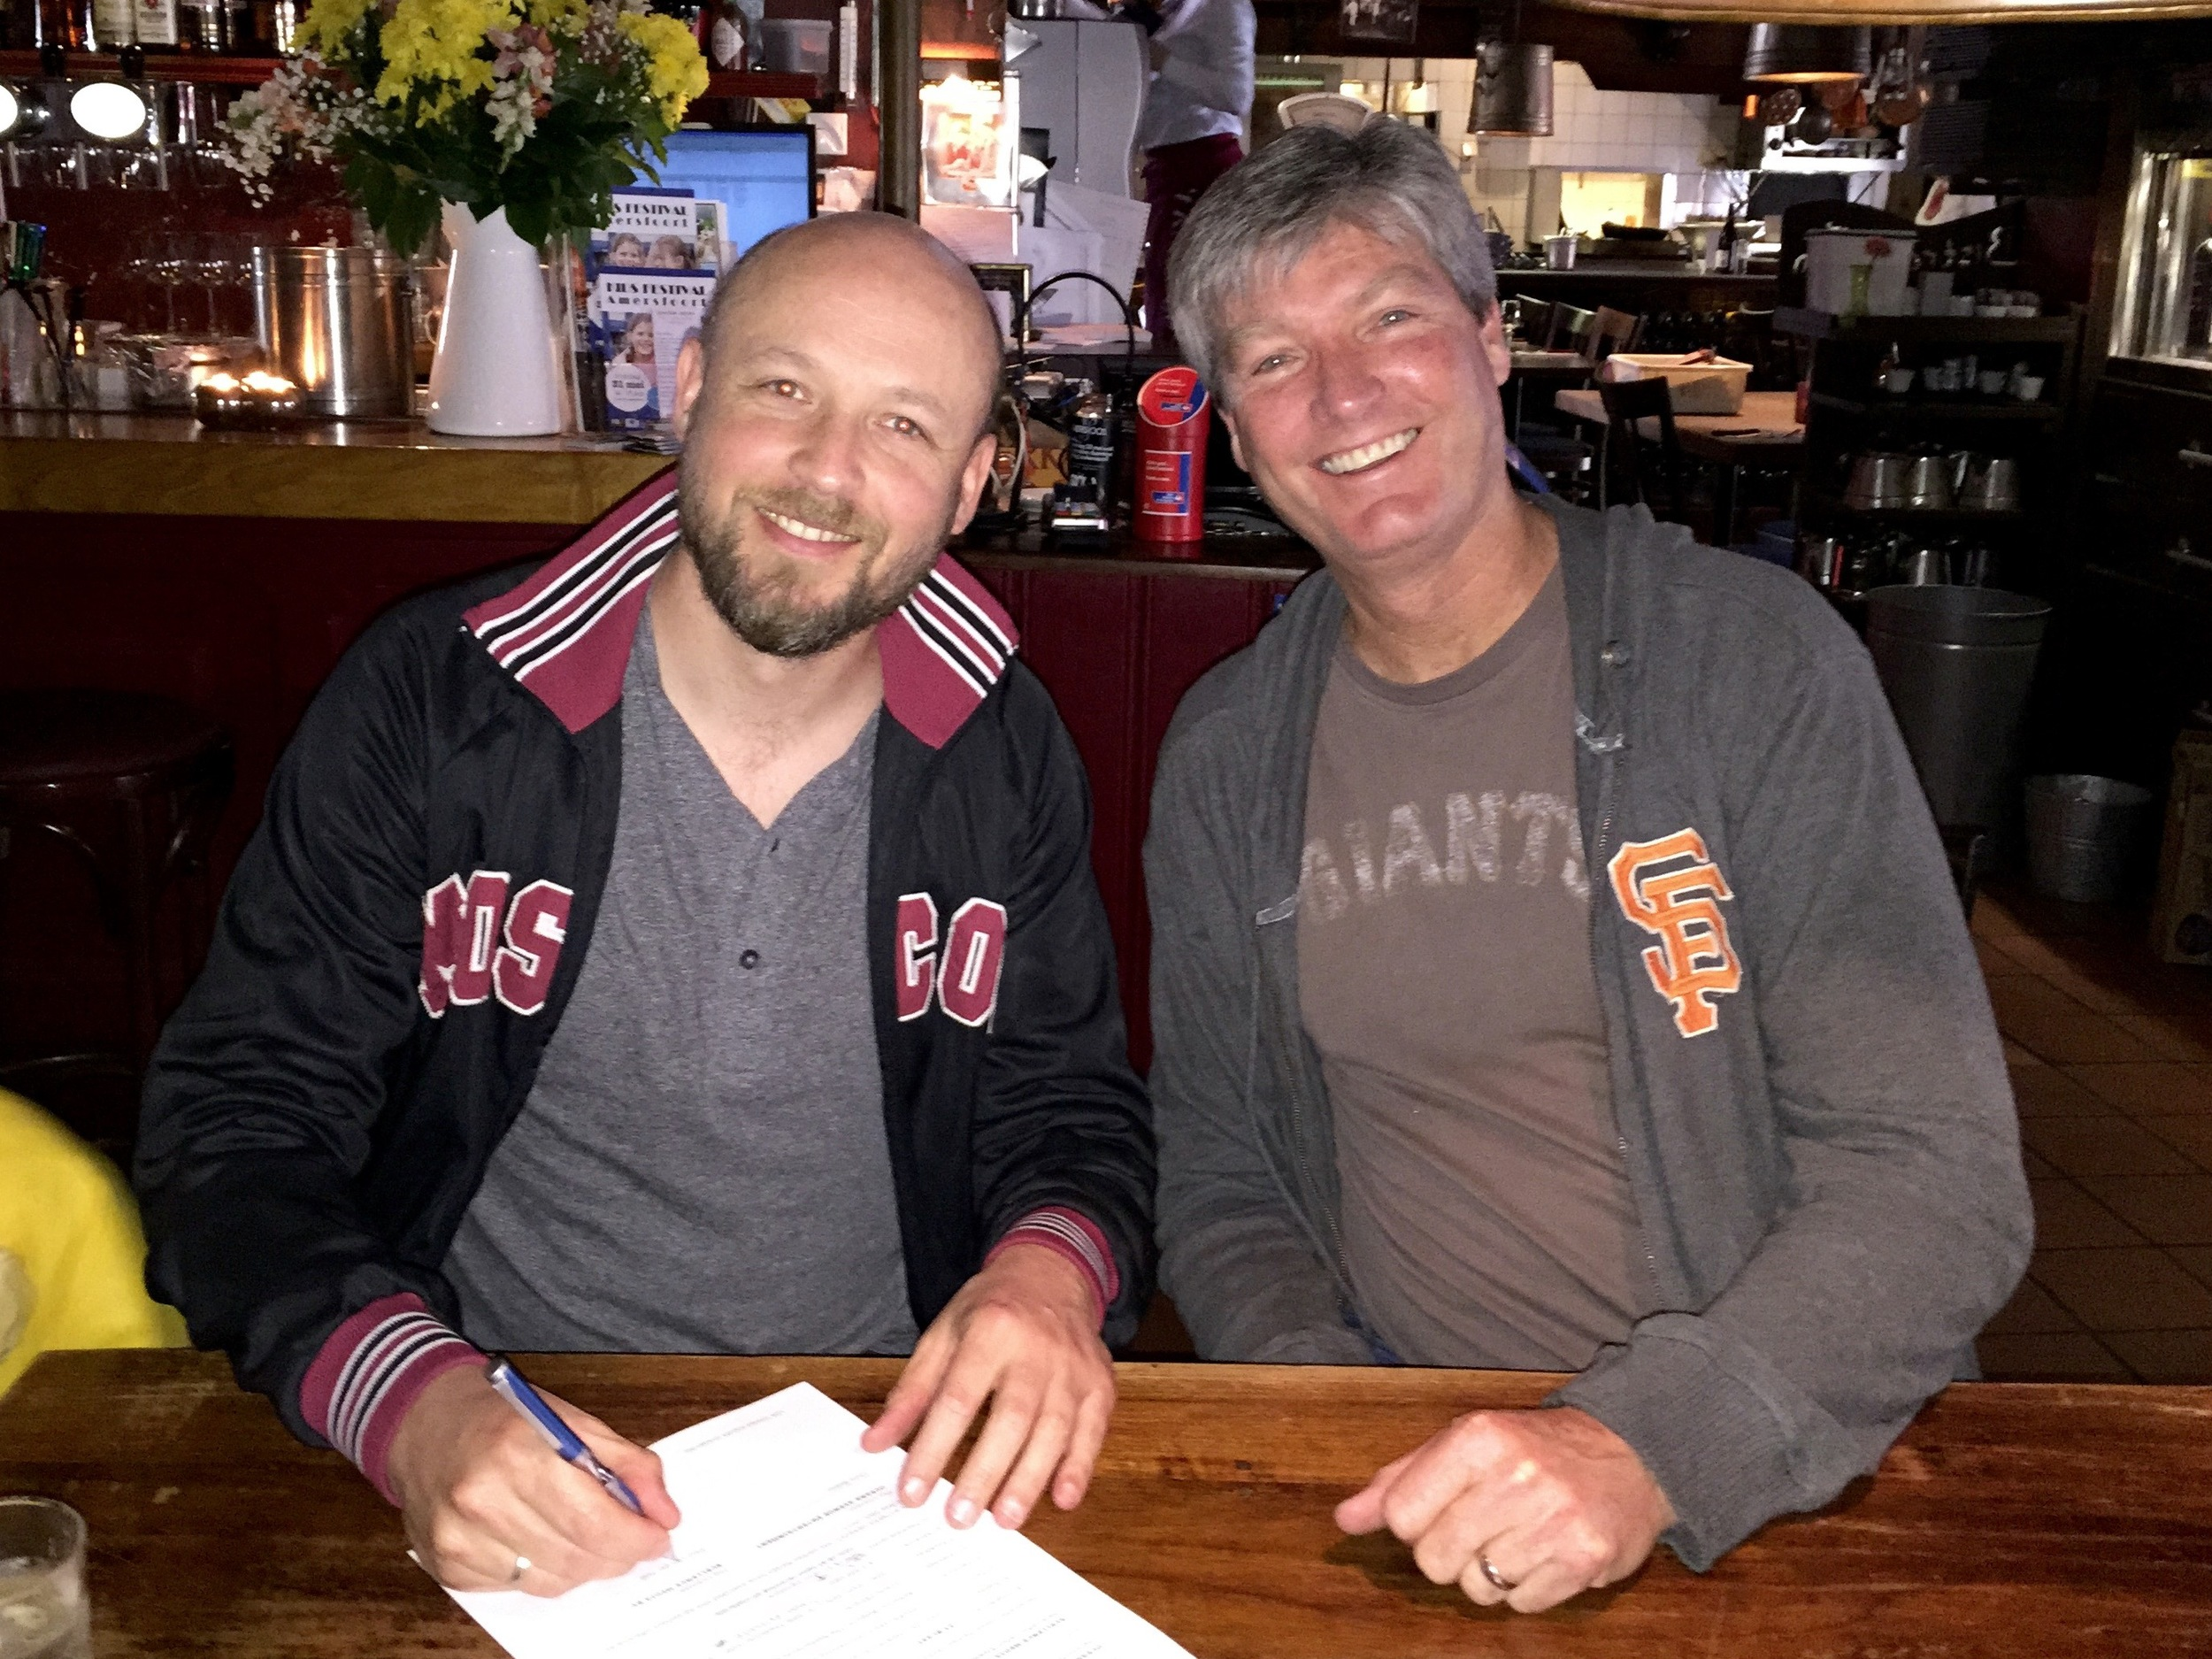 Paul van der Niet and Chris Bueno signing the agreement in Amersfoort, Holland to distribute 23 BLAST in the Netherland.